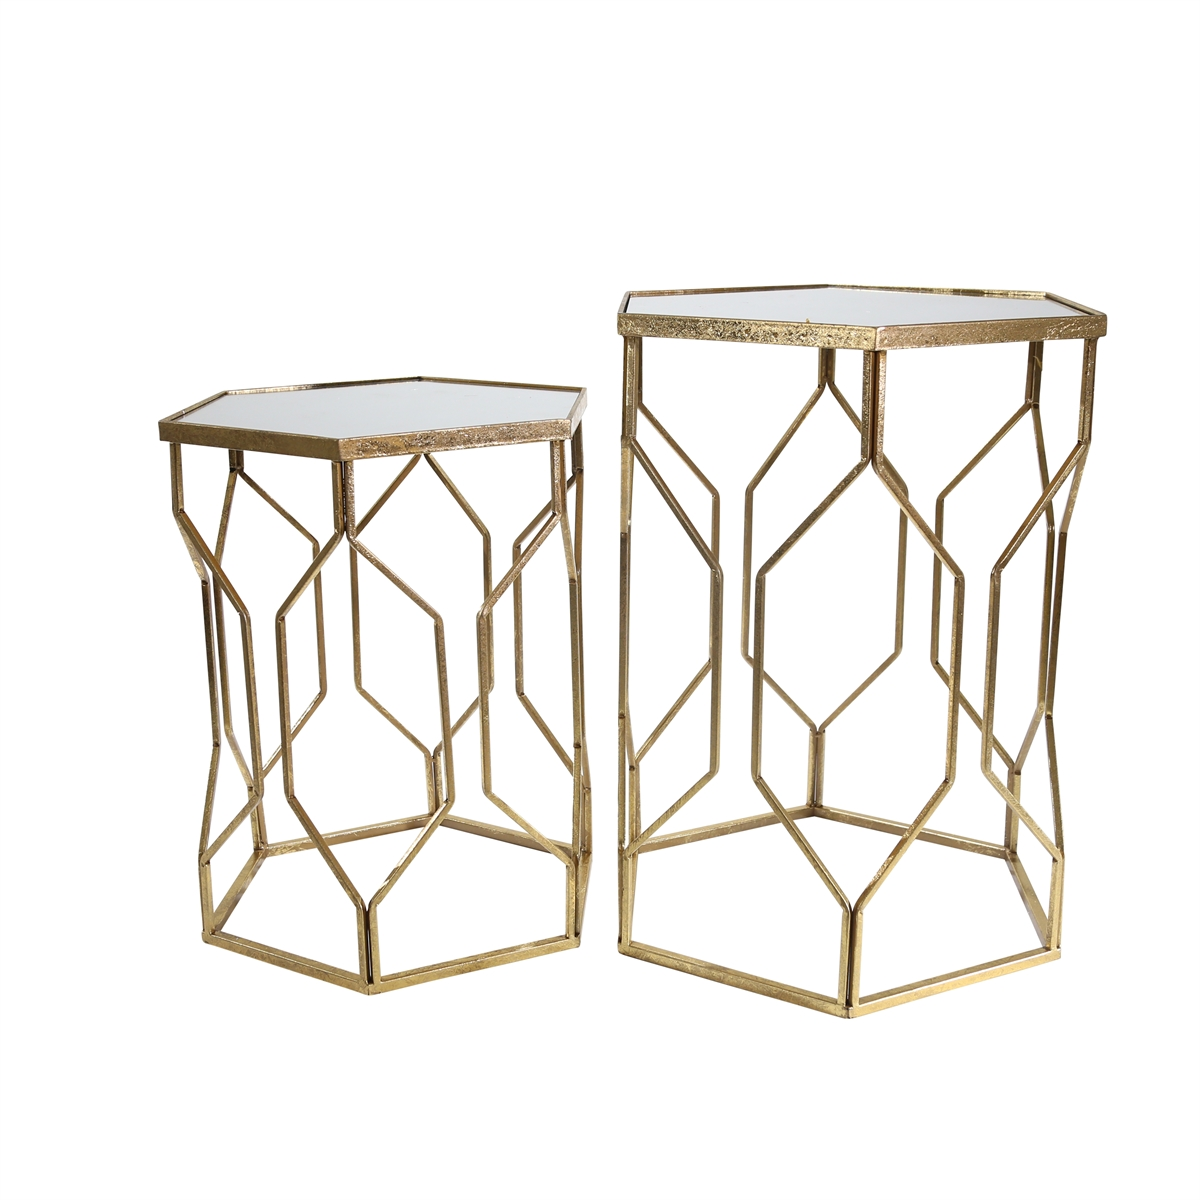 mirrored hexagon accent tables gold sagebrook home glass table with drawer moroccan tray red decor accents small side wooden storage trunk drum throne seat only tall lamps for